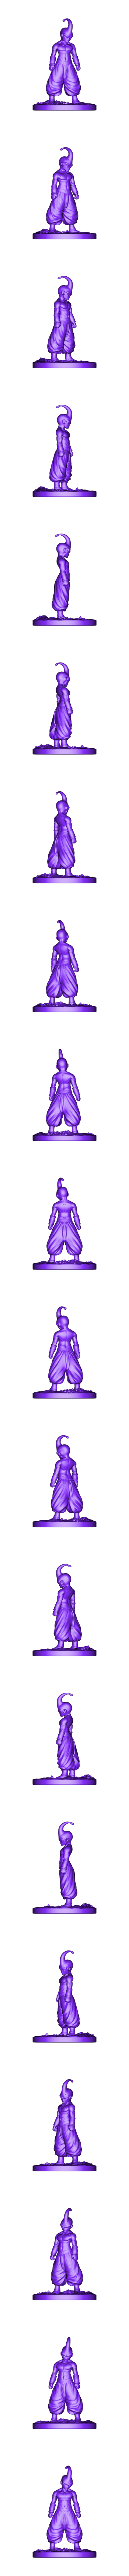 Buu_Figurine.stl Download OBJ file Kid Buu Dragon Ball Z • 3D print model, Ben_M